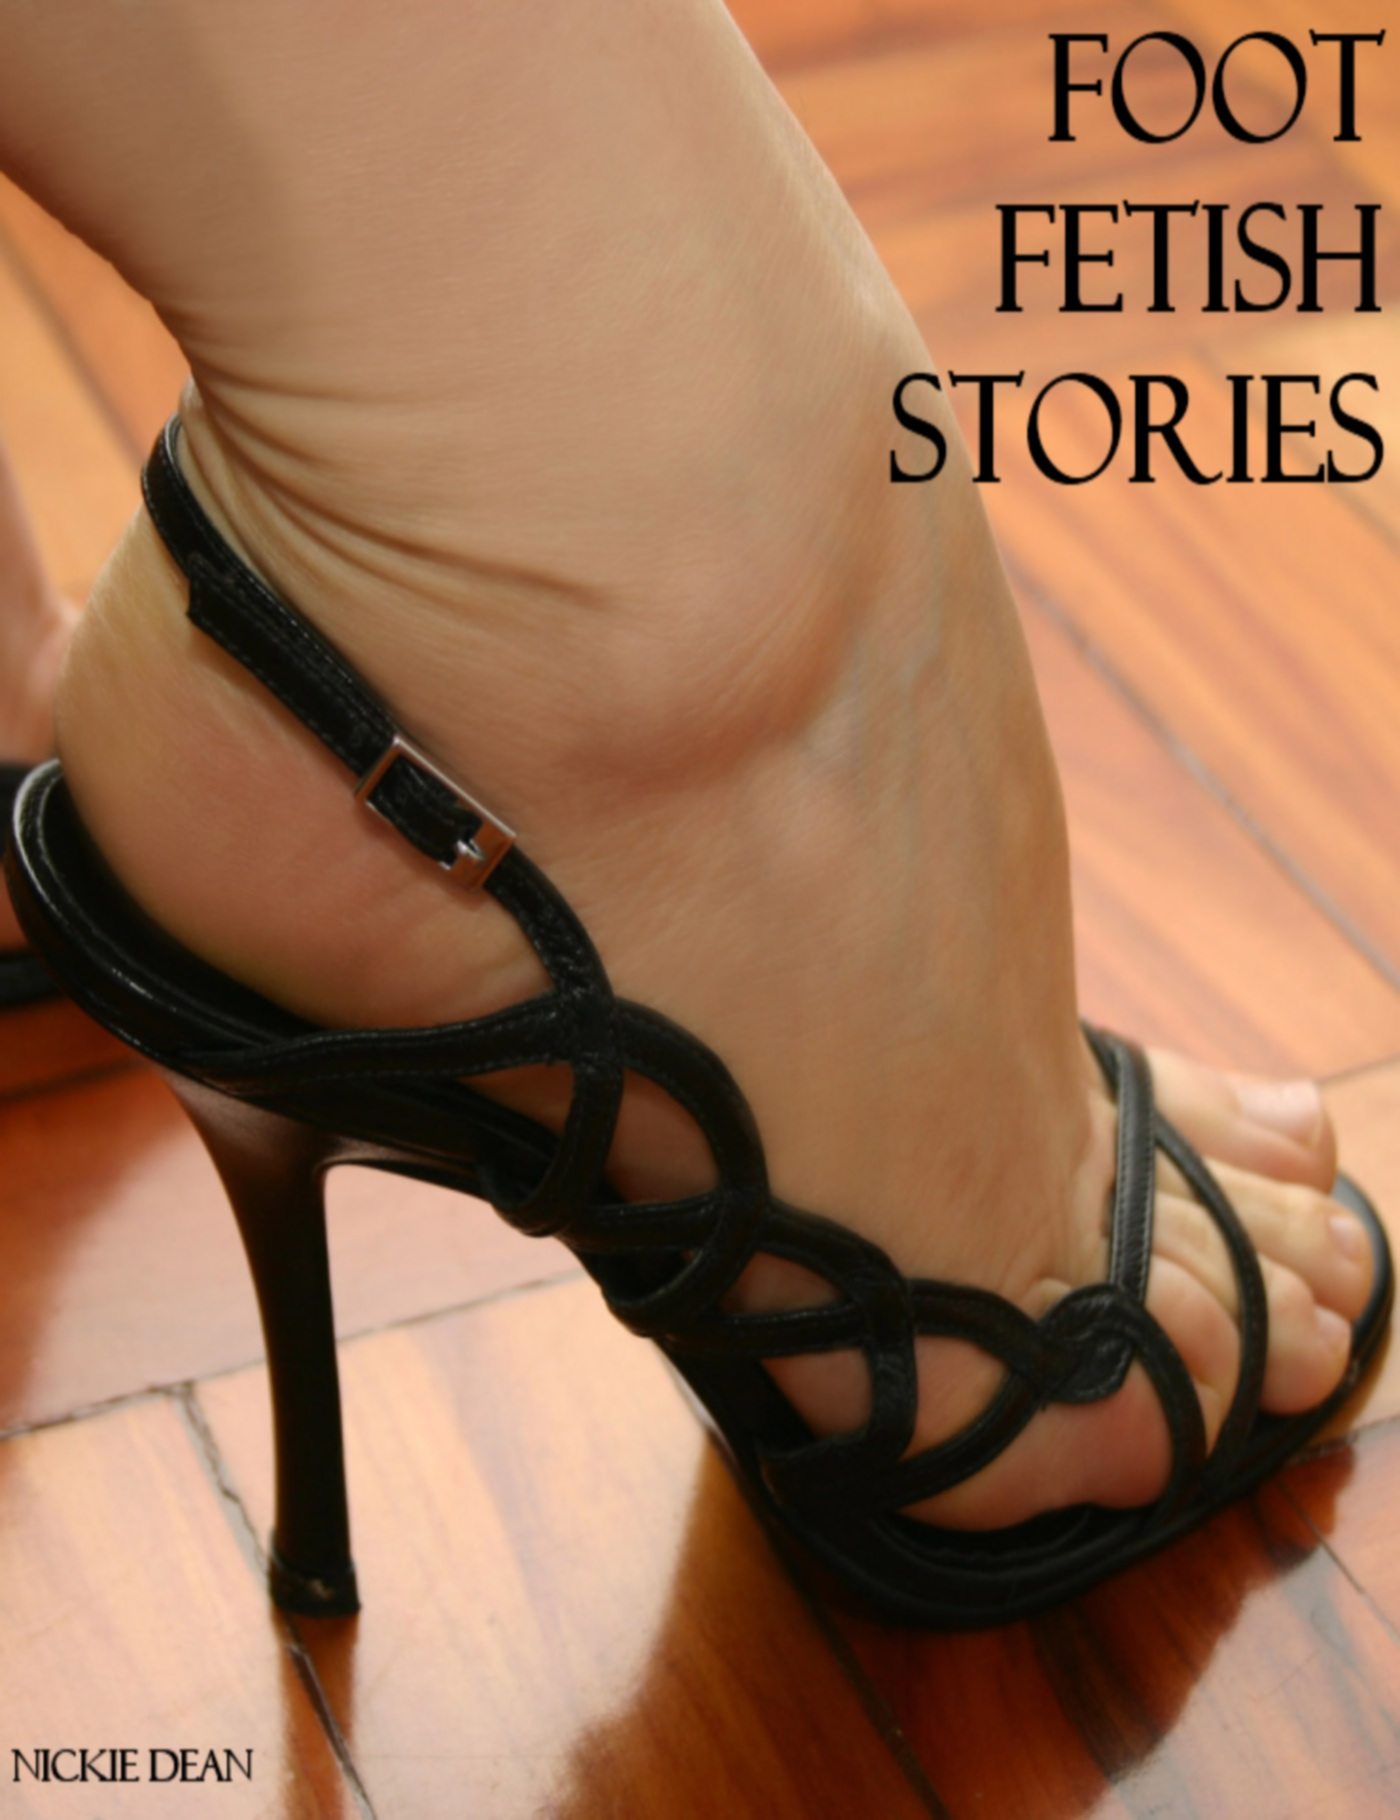 Smashwords  Foot Fetish Stories Foot Fetish Sex Stories -7494